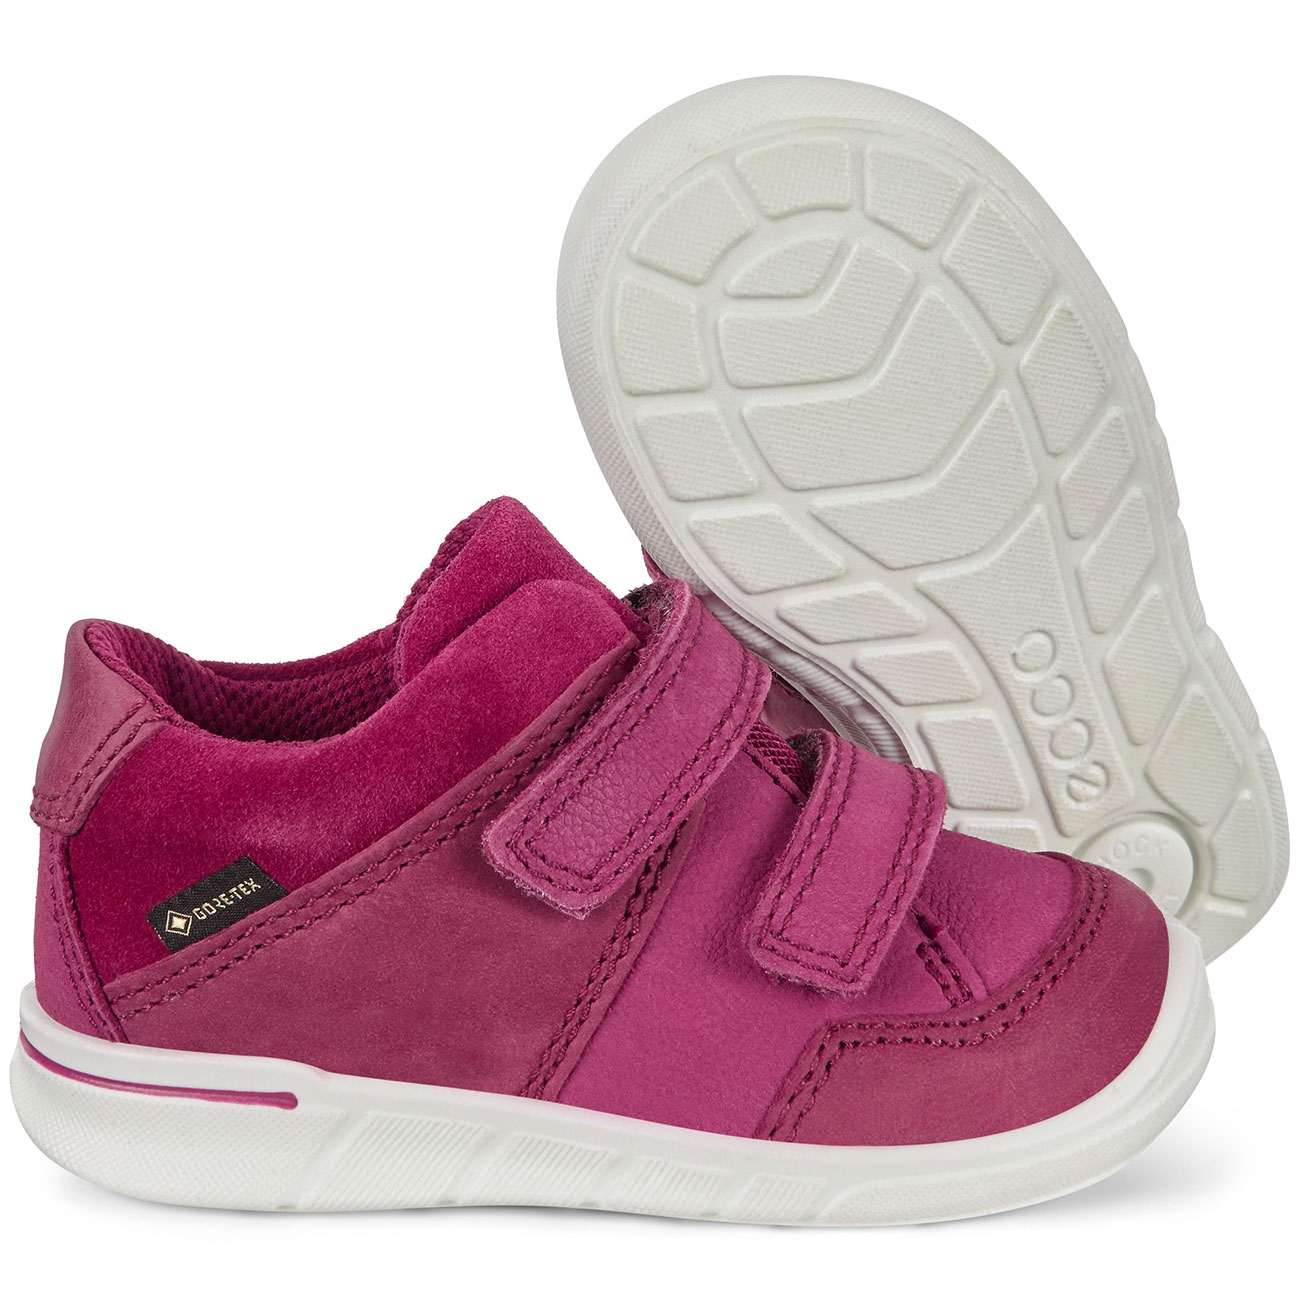 Ecco First Sko Morillo Red Plum